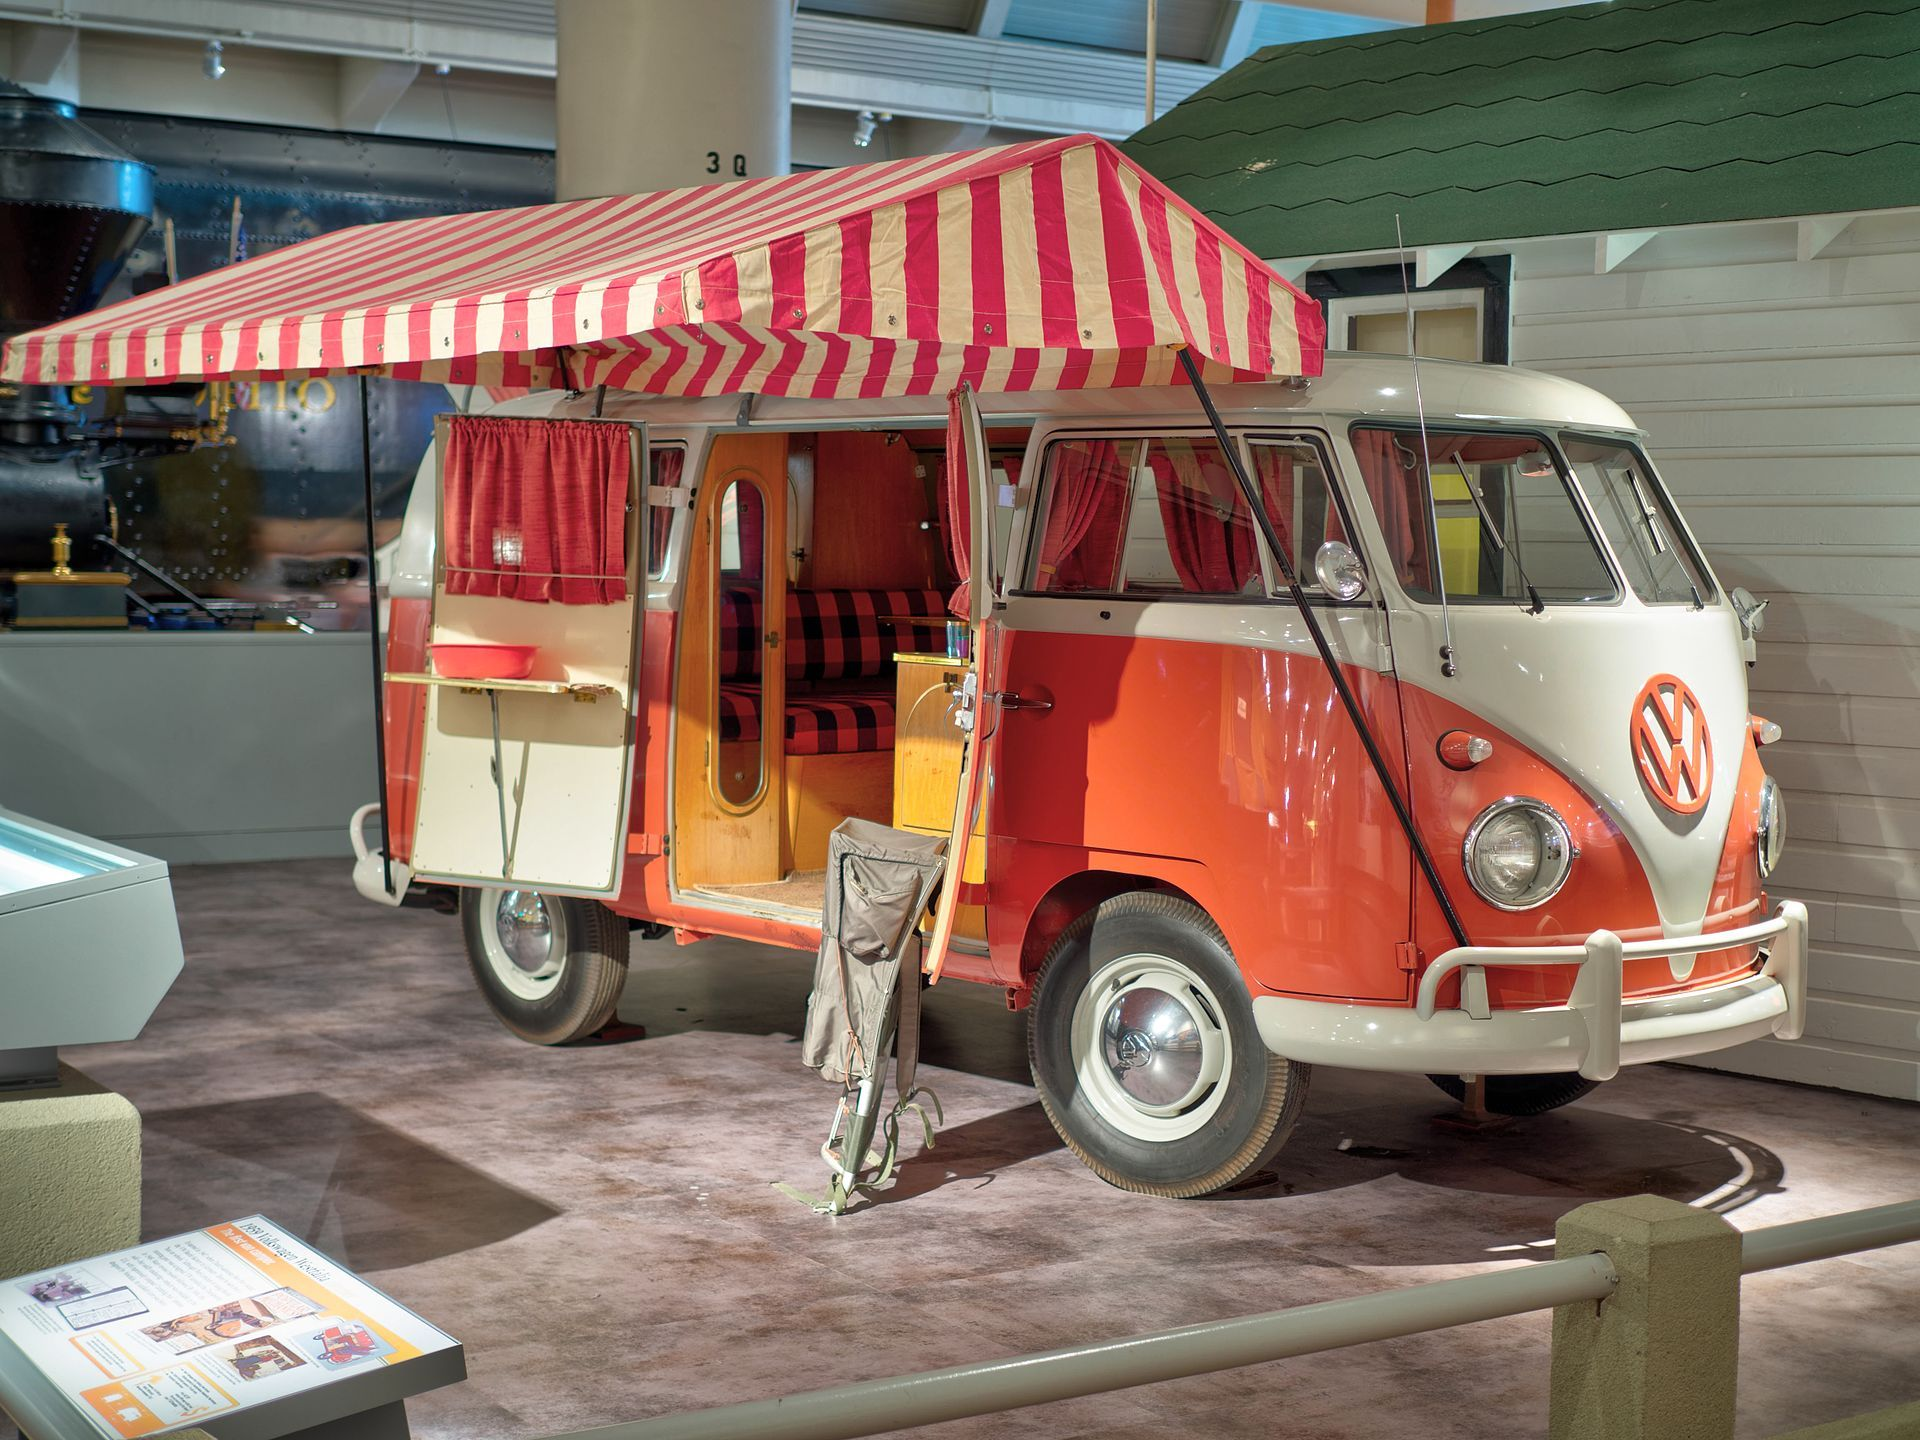 1959 Volkswagen Westfalia Camper at The Henry Ford (With images ...